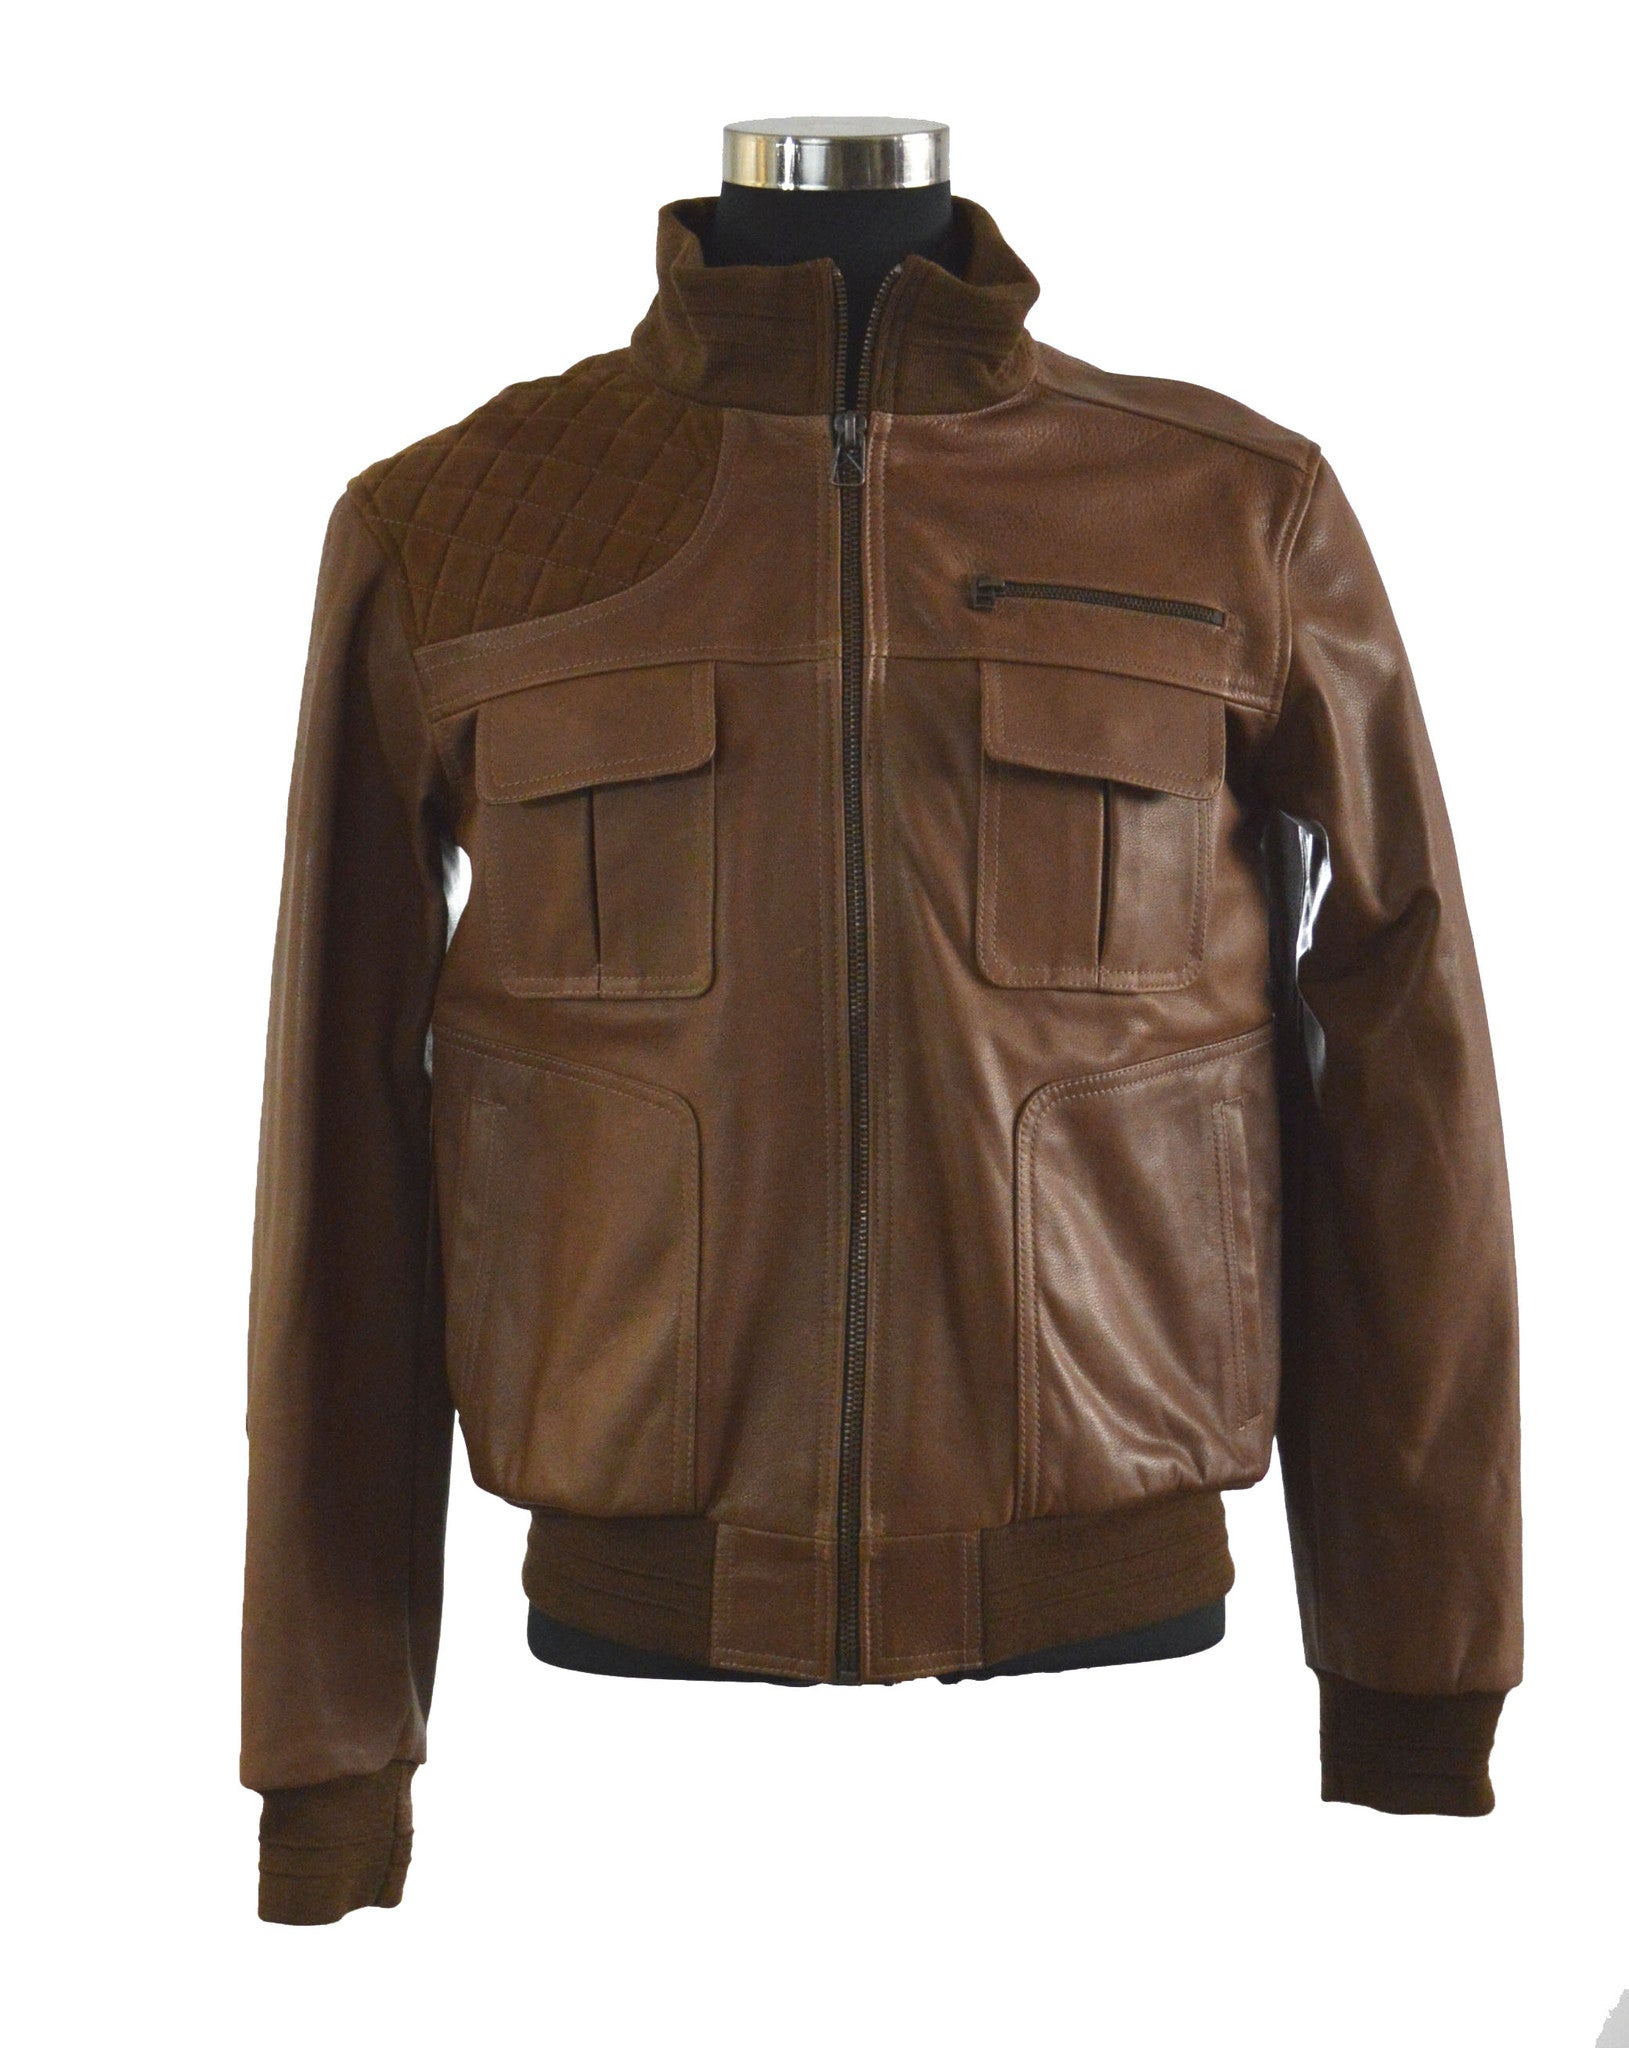 The Brown Bomber Jacket